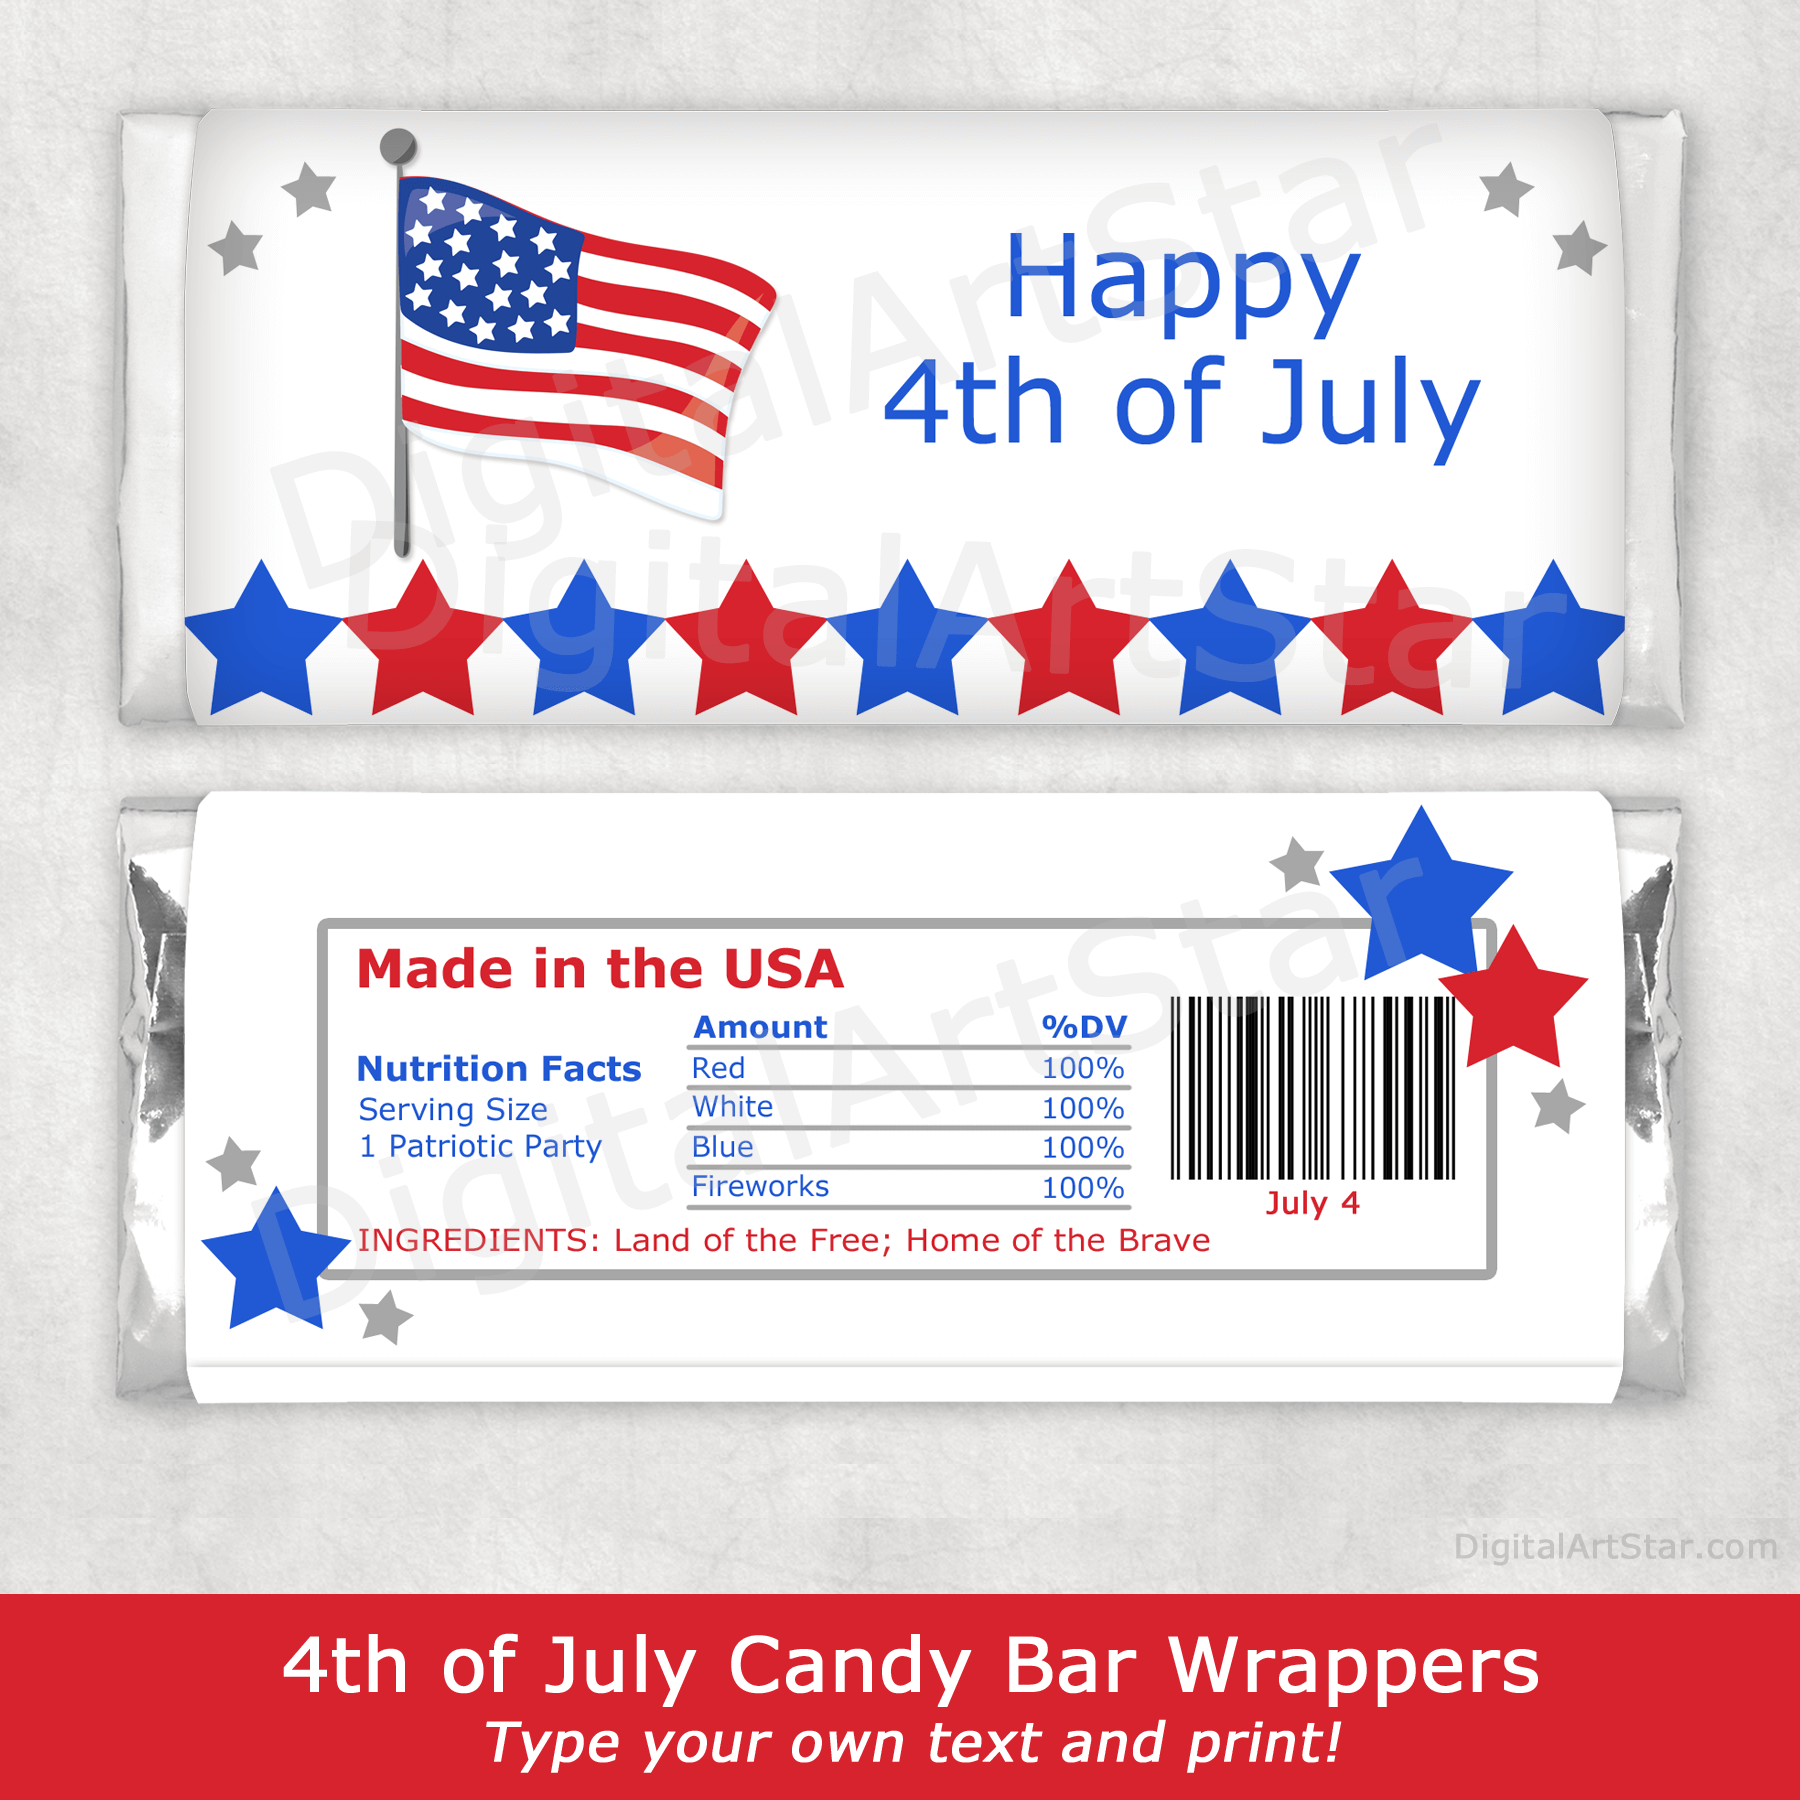 Editable 4th of July Candy Bar Wrappers Template